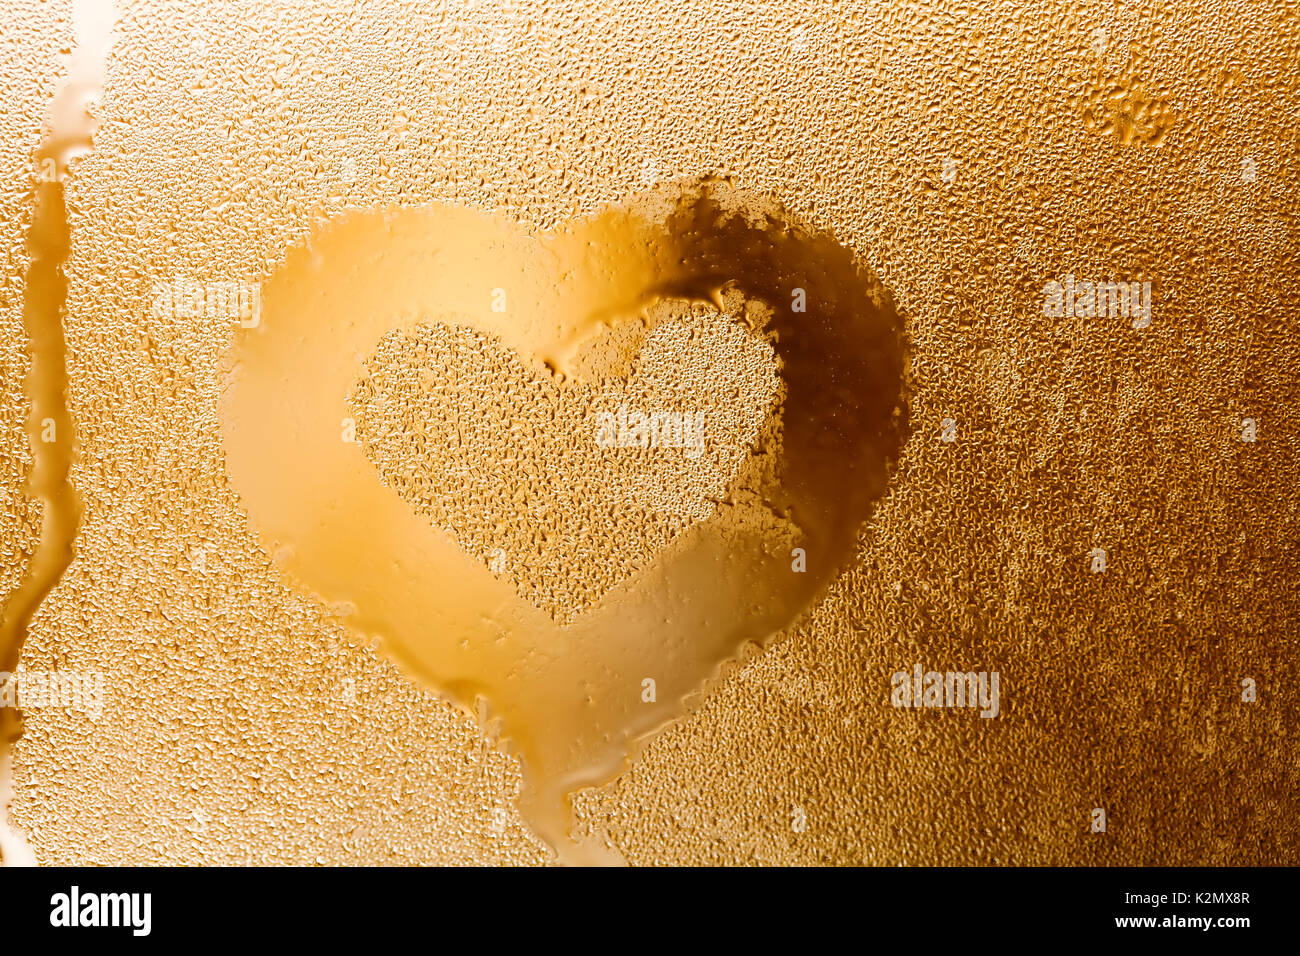 Love heart shape and raindrops textured pattern. Abstract golden color window with water droplet, liquid bubbles. macro view. Shallow depth of field. Valentines day concept. horizontal - Stock Image